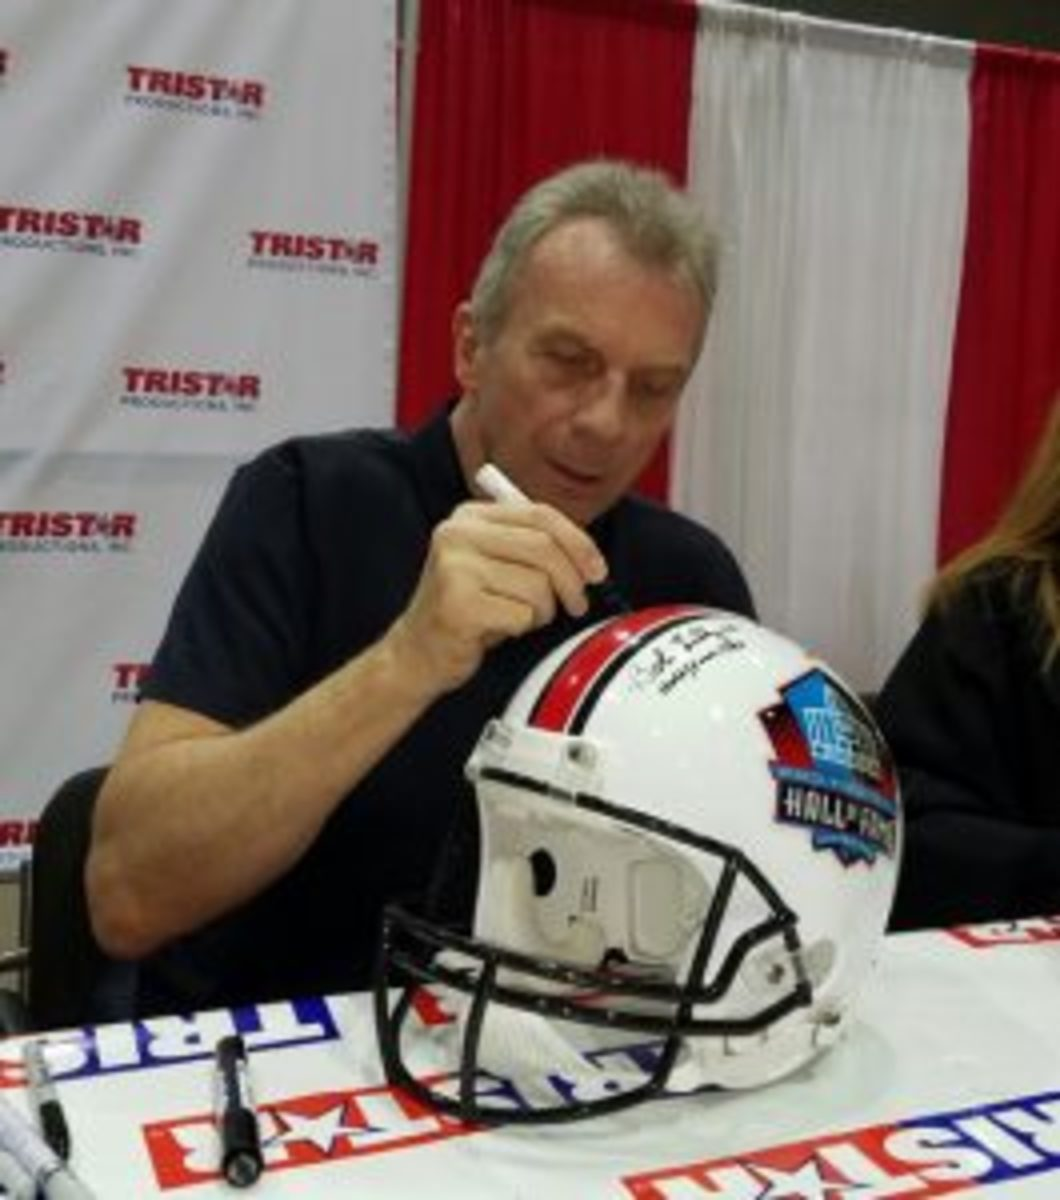 Joe Montana signs a Football Hall of Fame helmet at the 31st annual Tristar Collectors Show in Houston earlier this year. (Ross Forman photo)